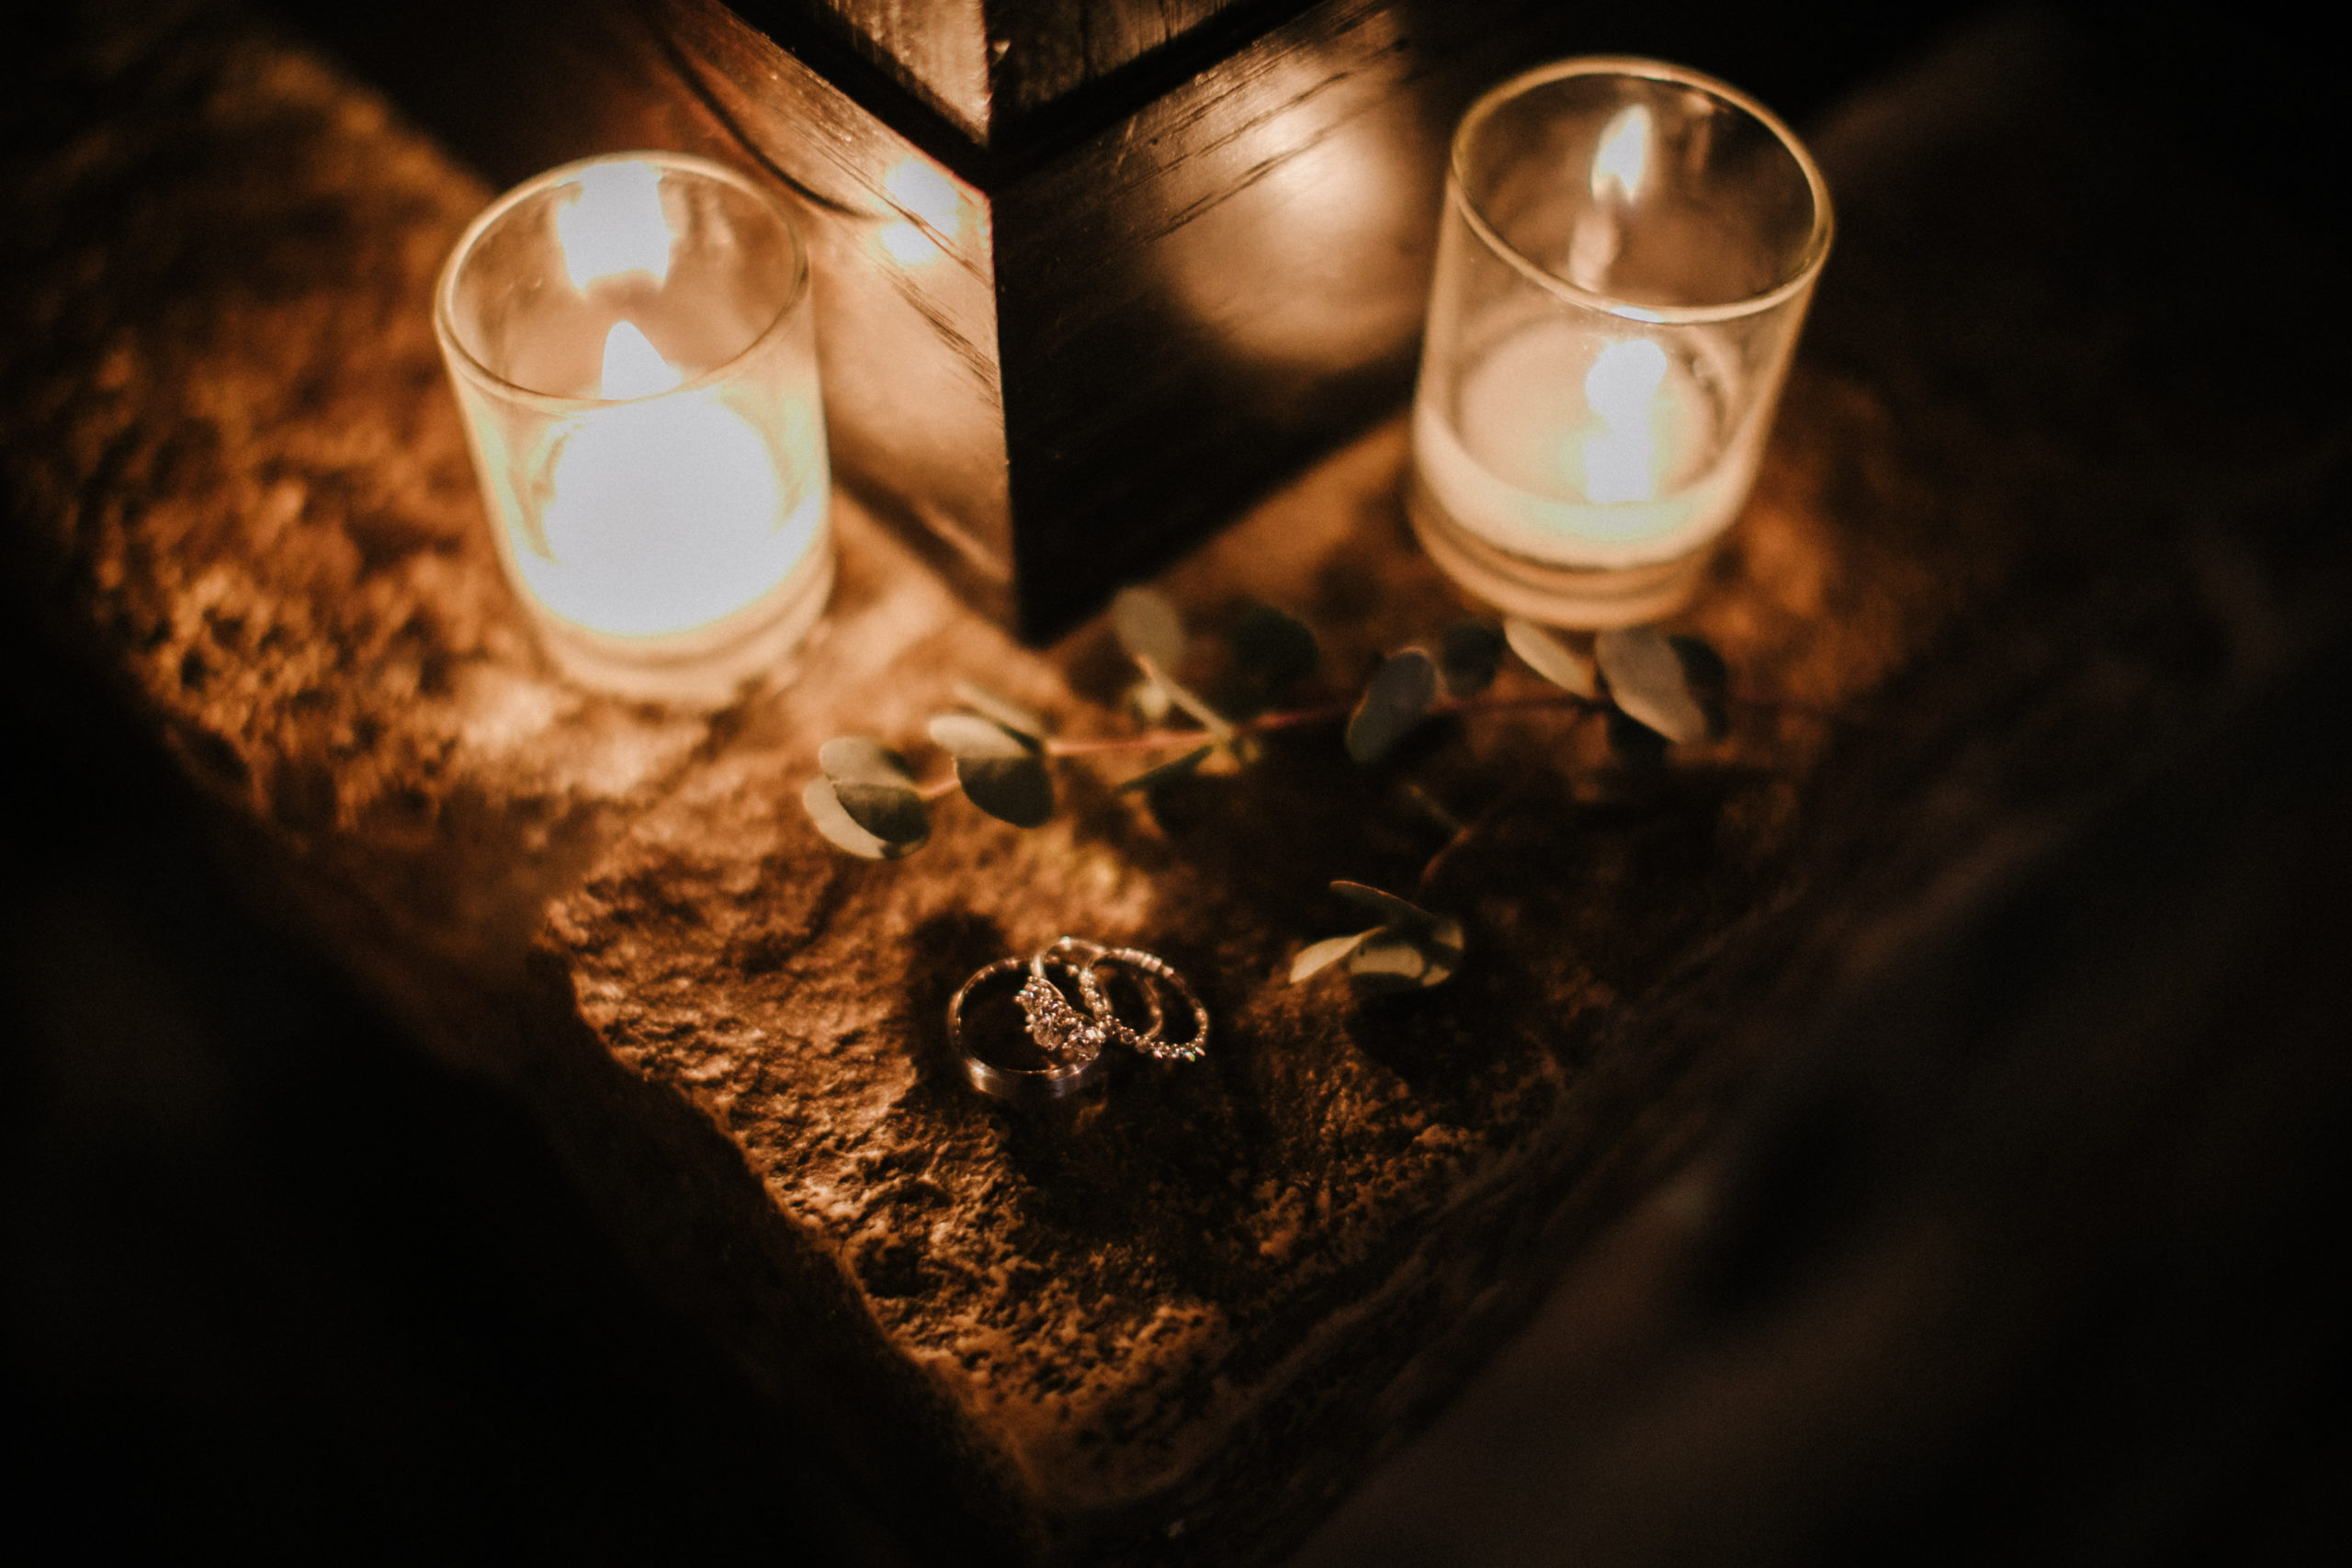 Wedding rings sit on a stone ledge near candlelight